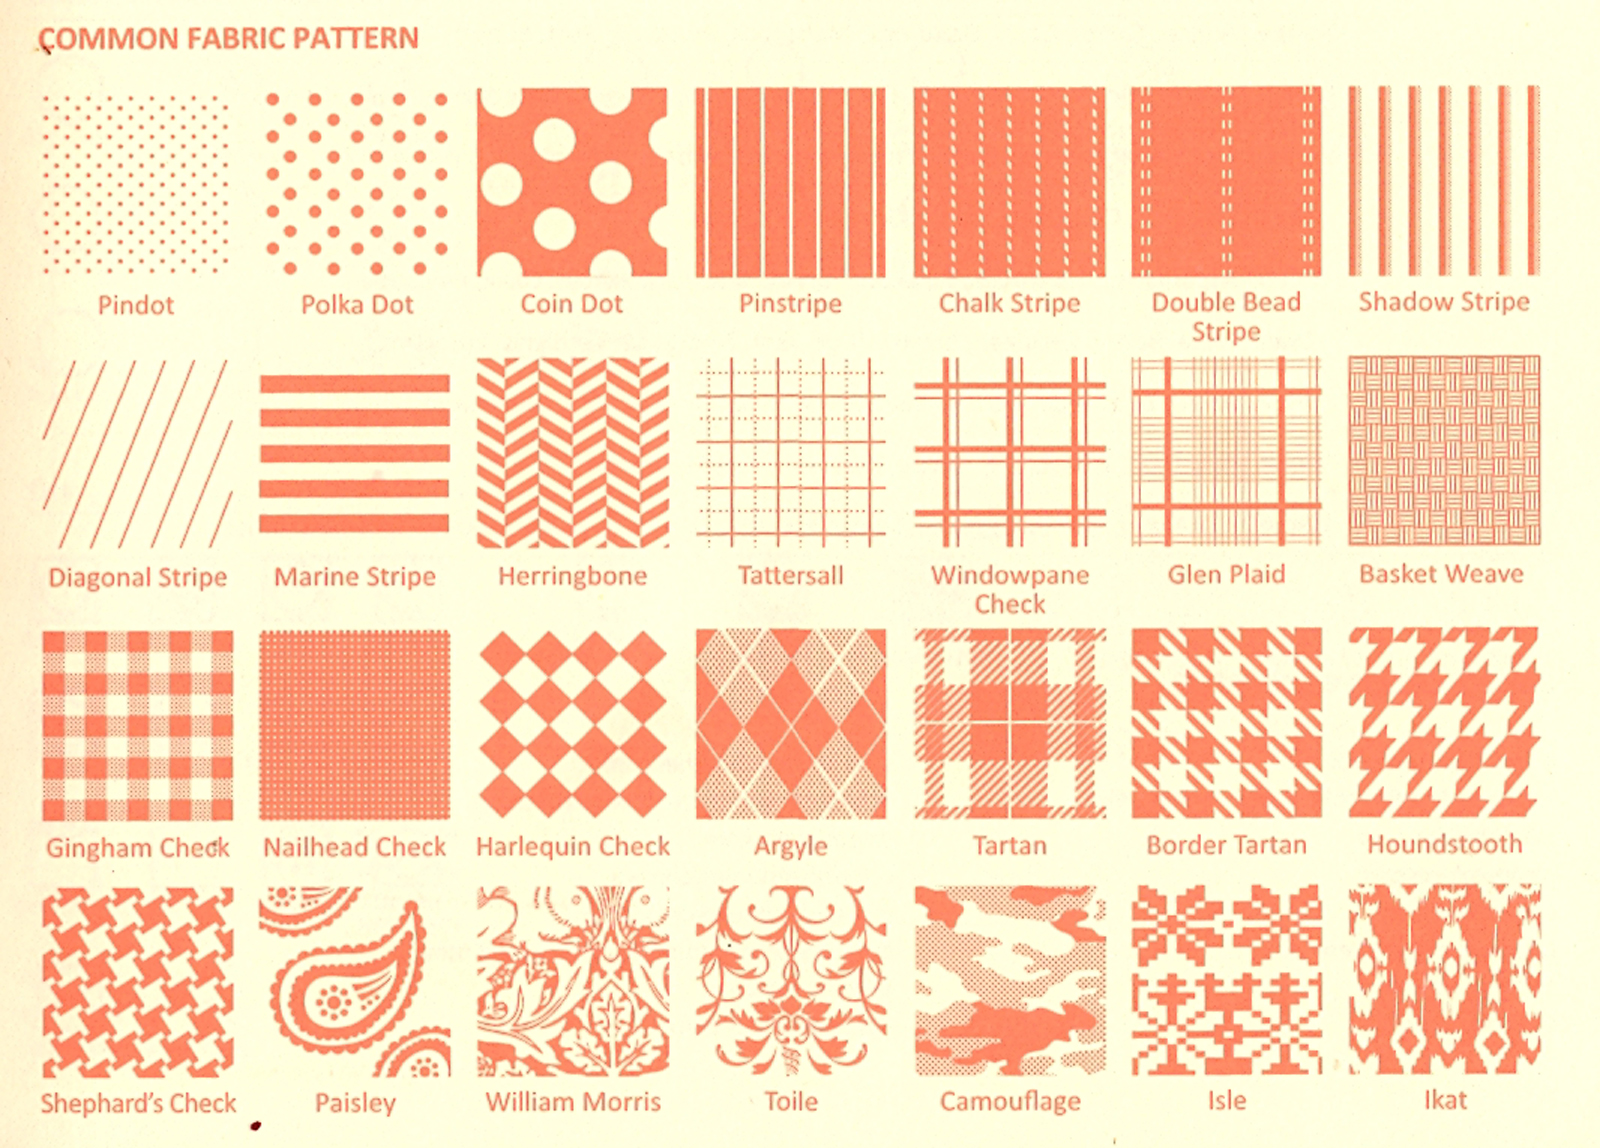 Common_Fabric_Pattern